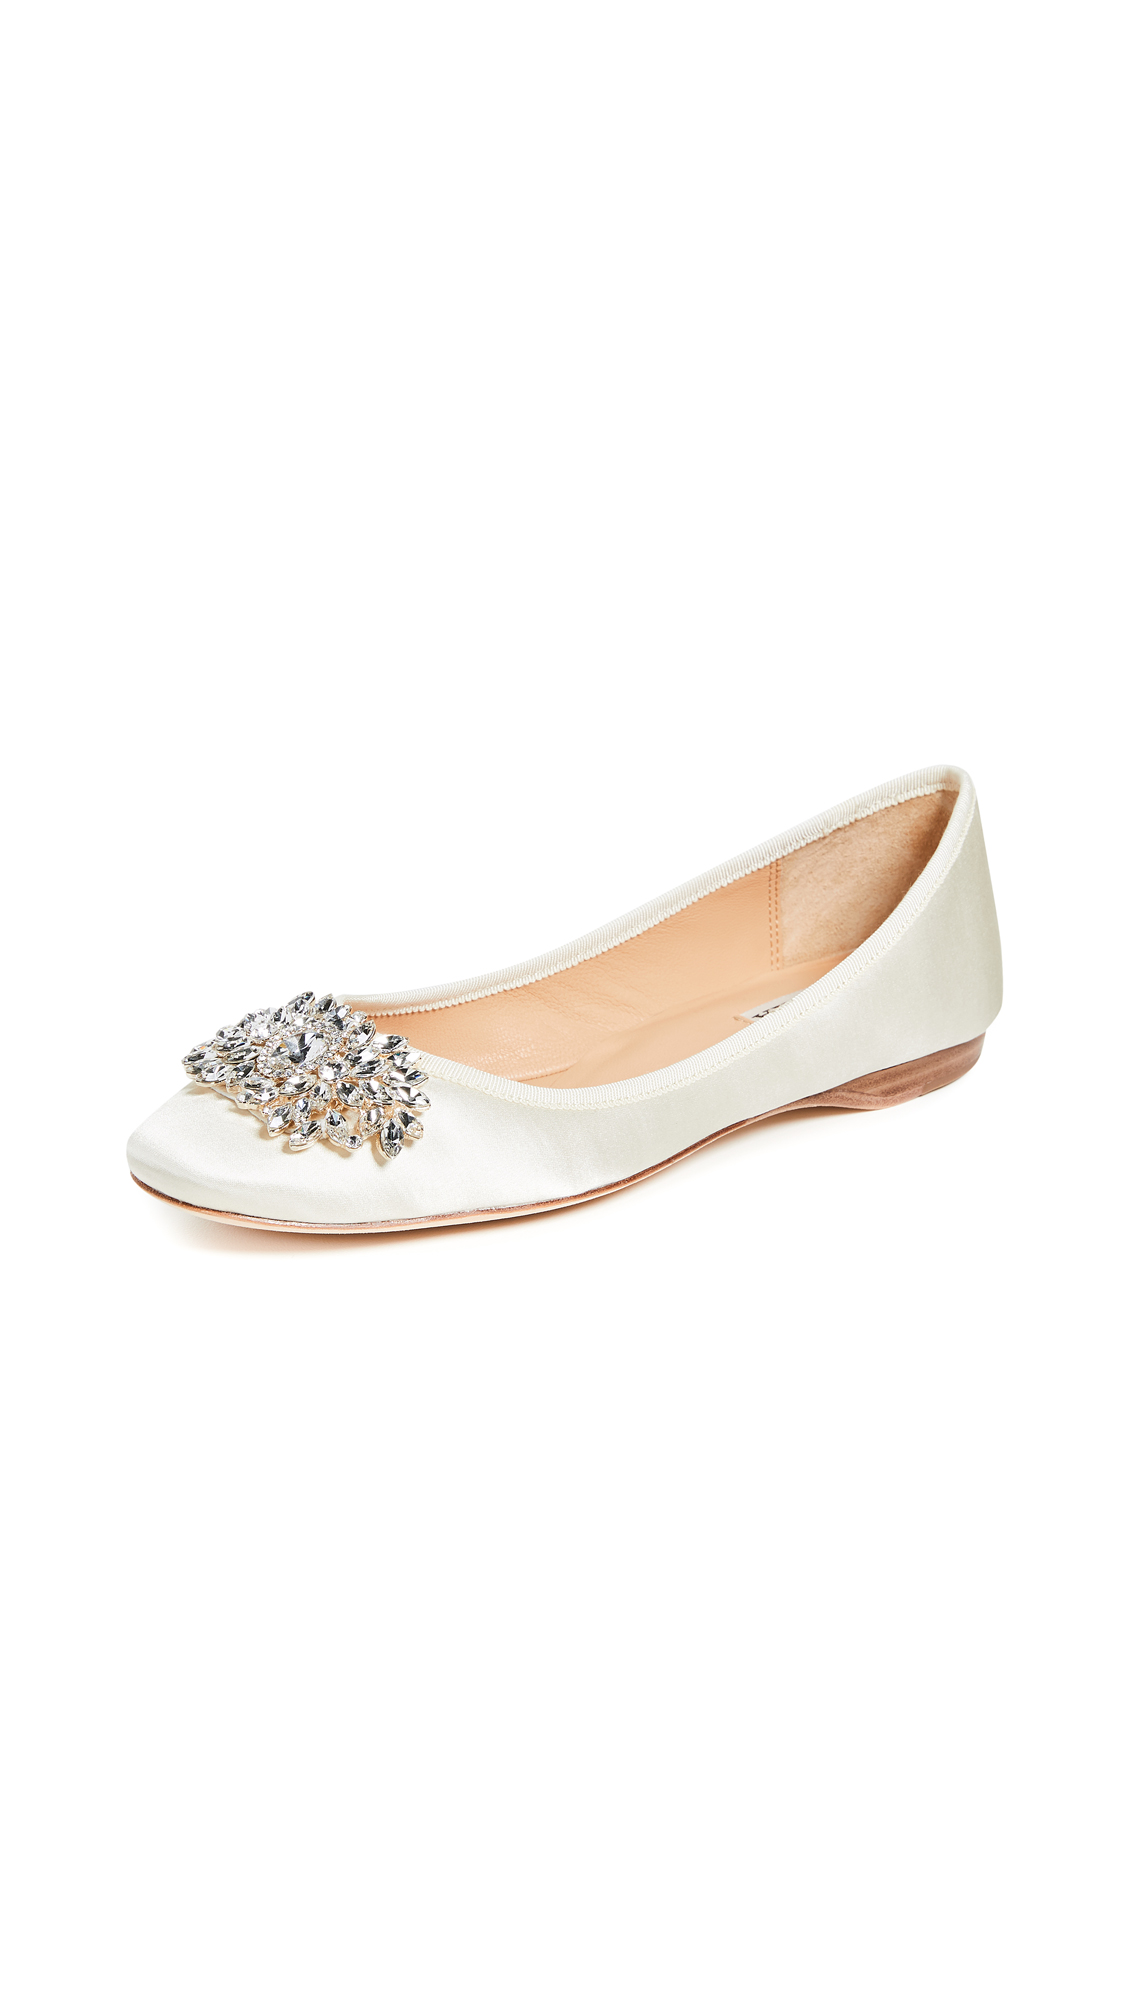 Badgley Mischka Pippa Flats